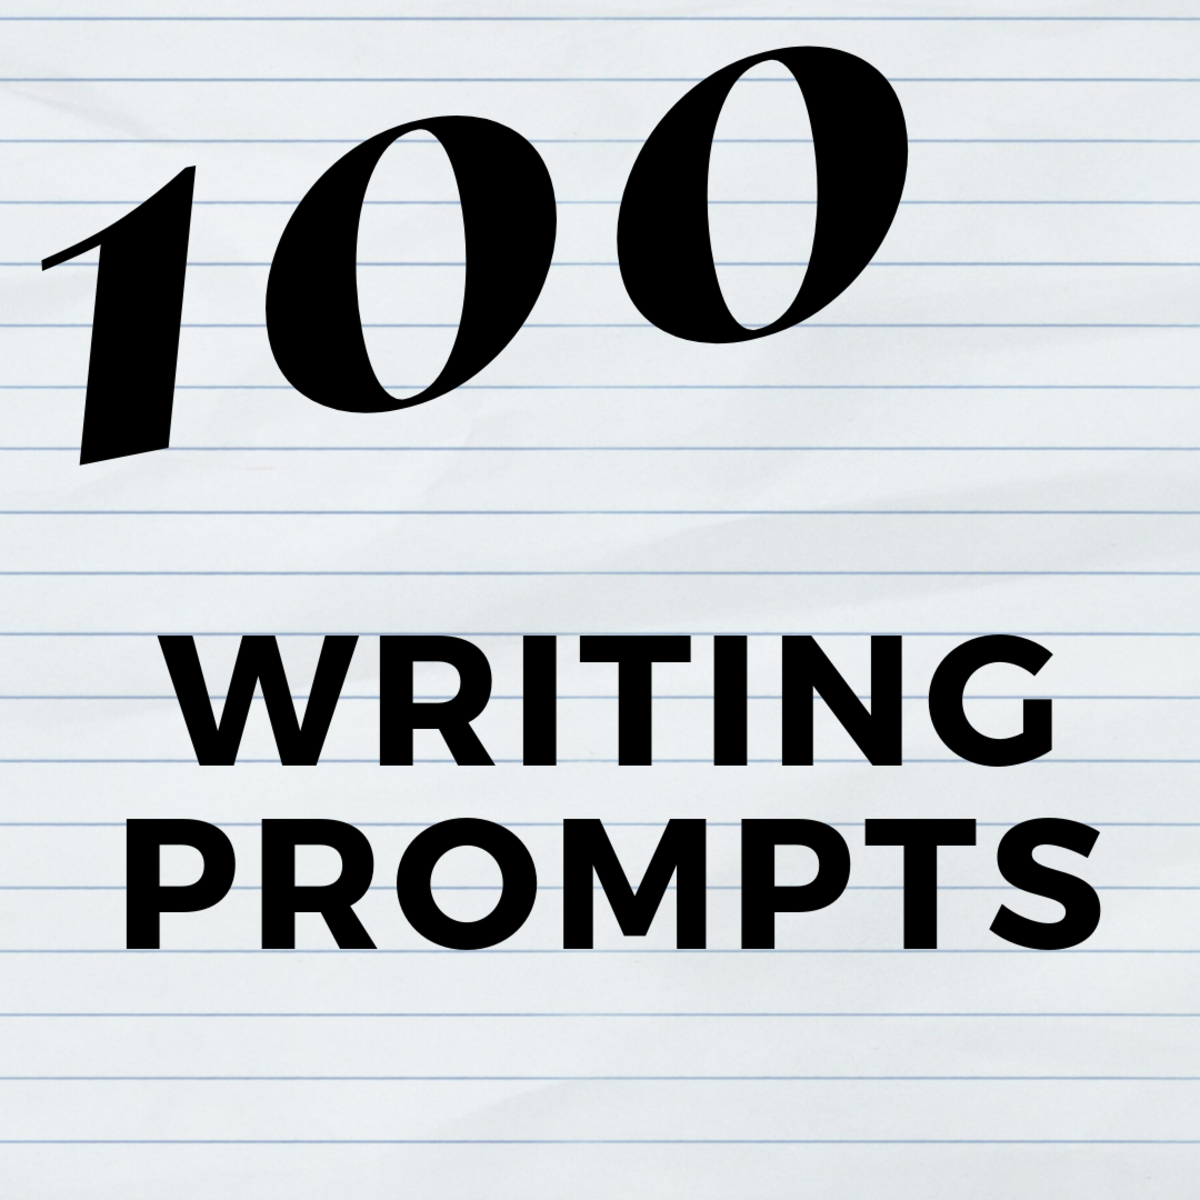 101 Writing Prompts to Inspire You